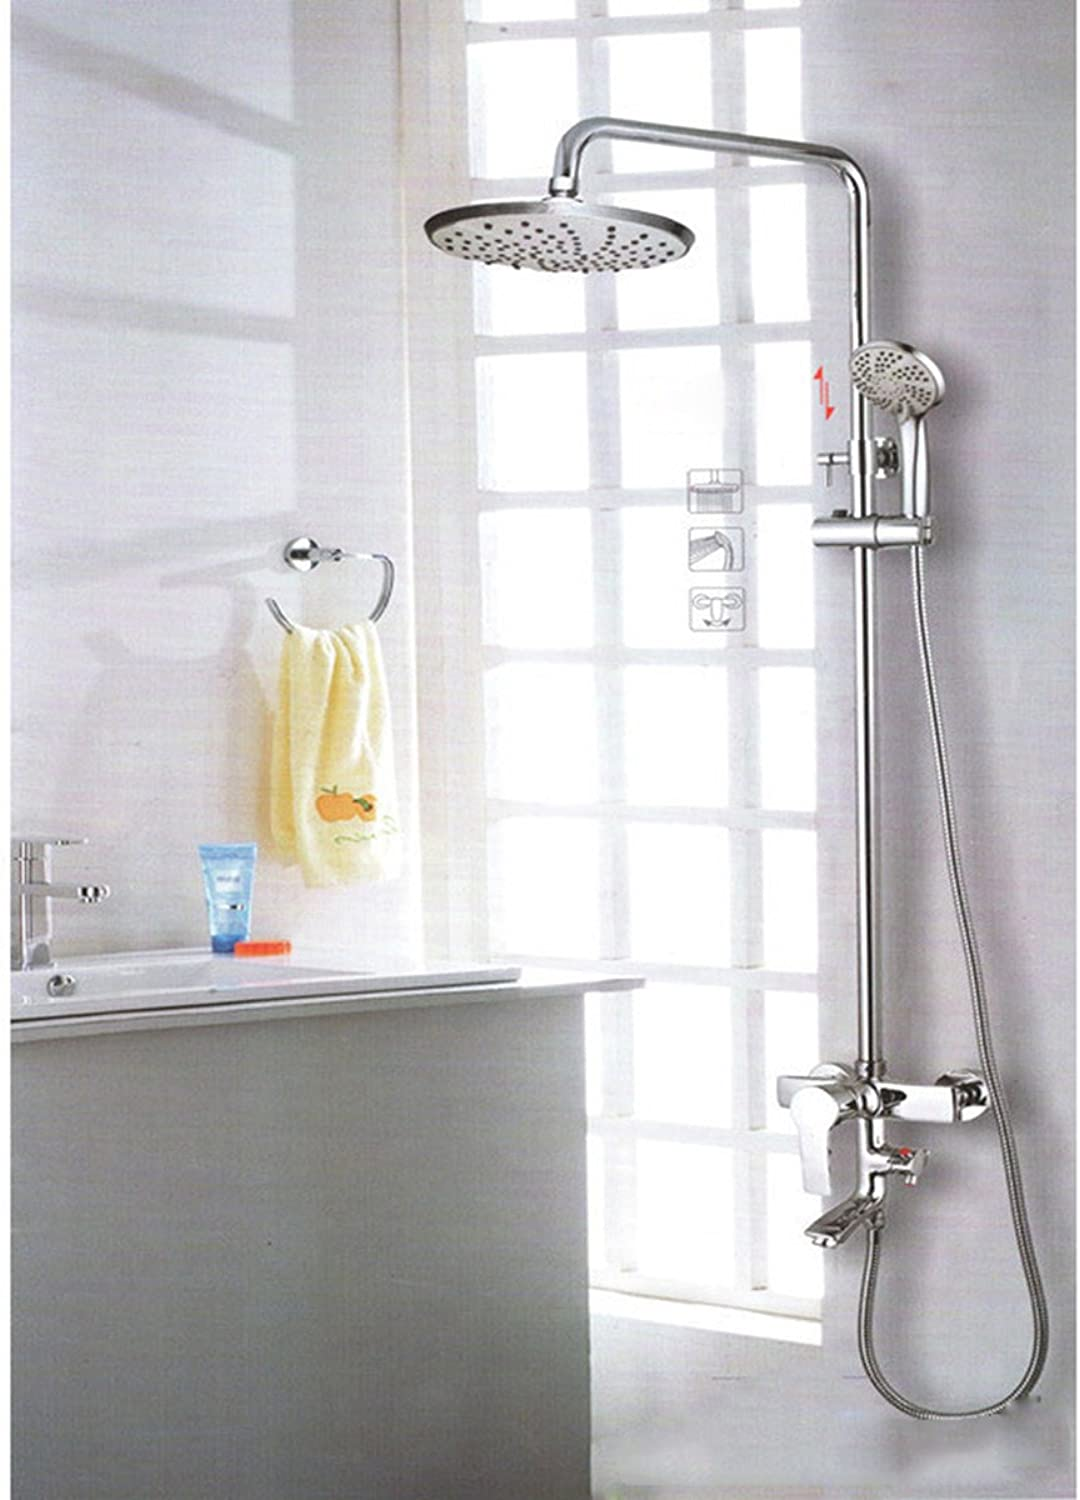 THISME Full Copper Bathroom Shower Suit,A